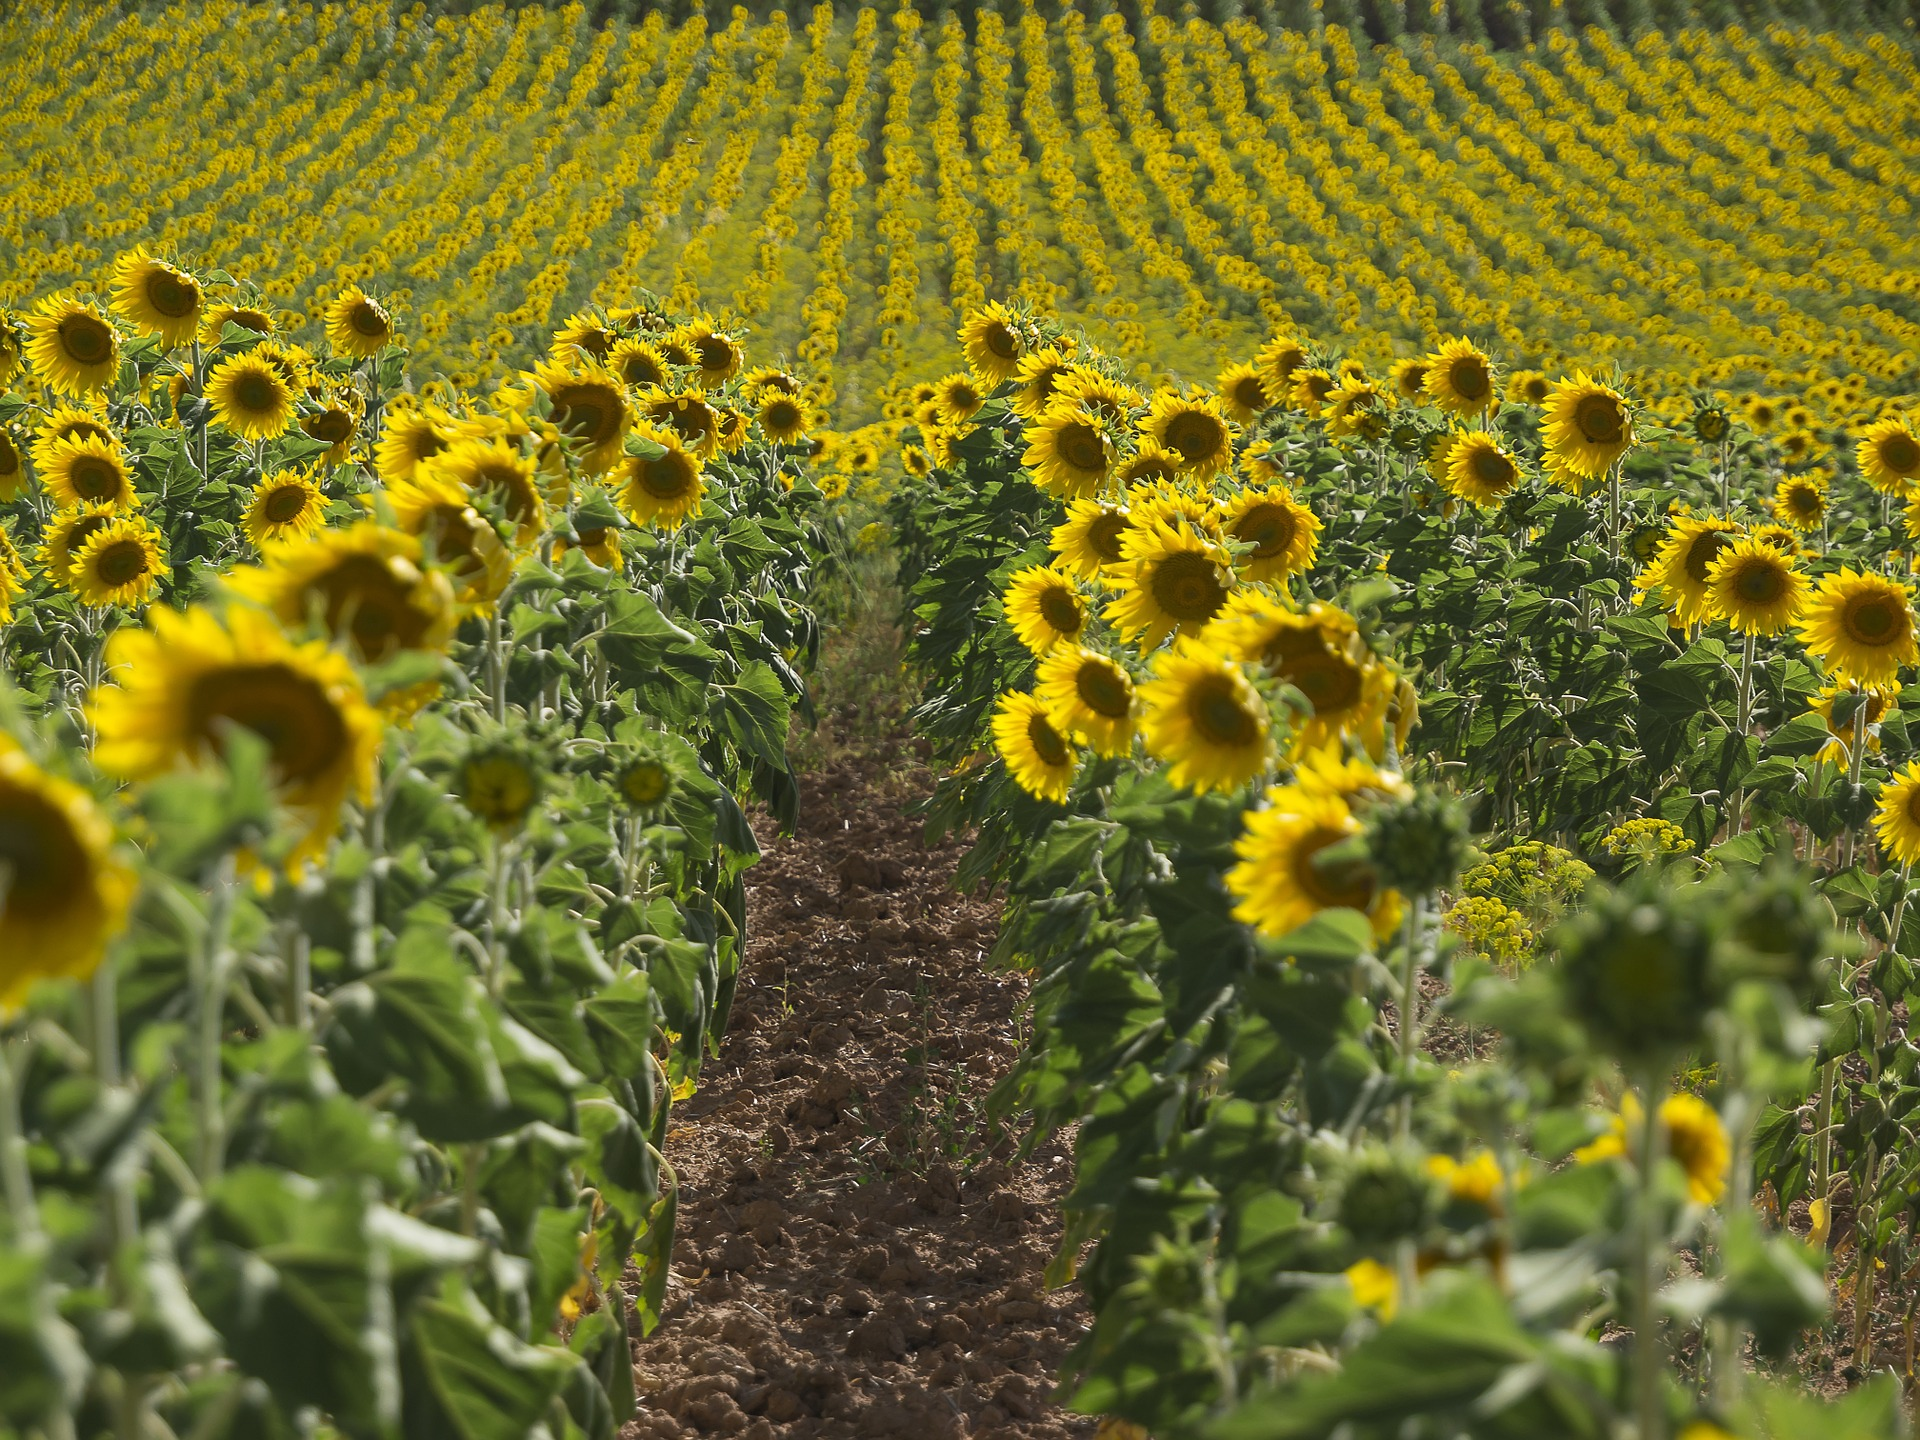 sunflowers-1460824_1920